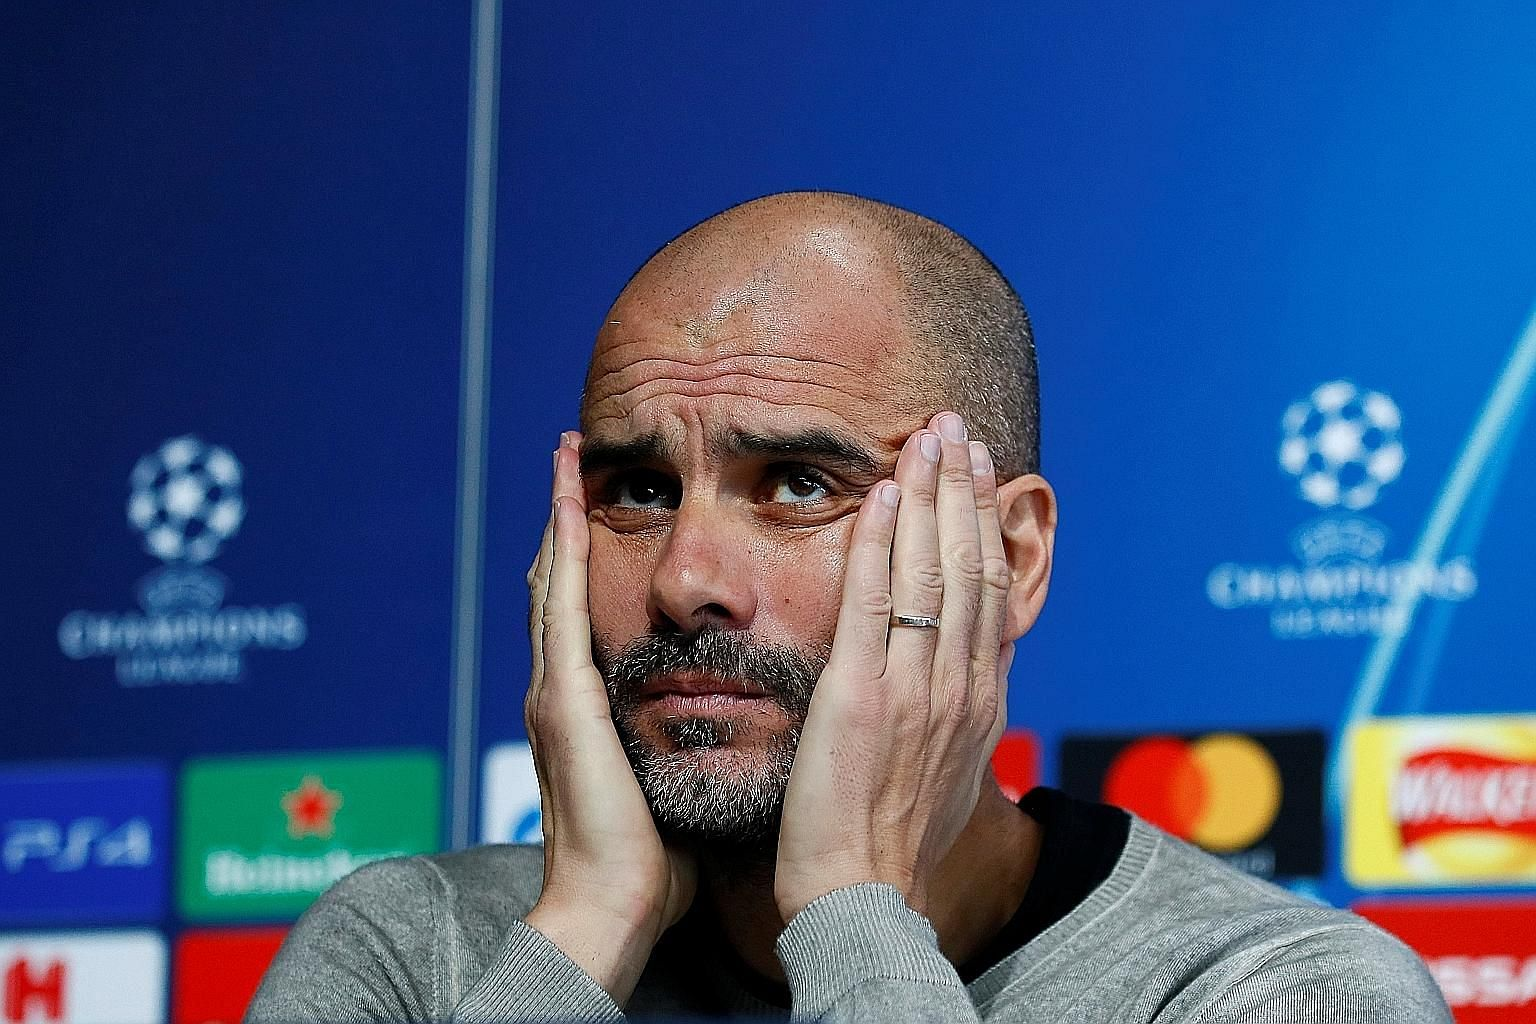 Manchester City manager Pep Guardiola, at yesterday's press conference, wants the home crowd at the Etihad Stadium tomorrow to be as lively as the one when they beat Liverpool 2-1. City lost the Champions League quarter-finals first leg to Spurs 1-0.